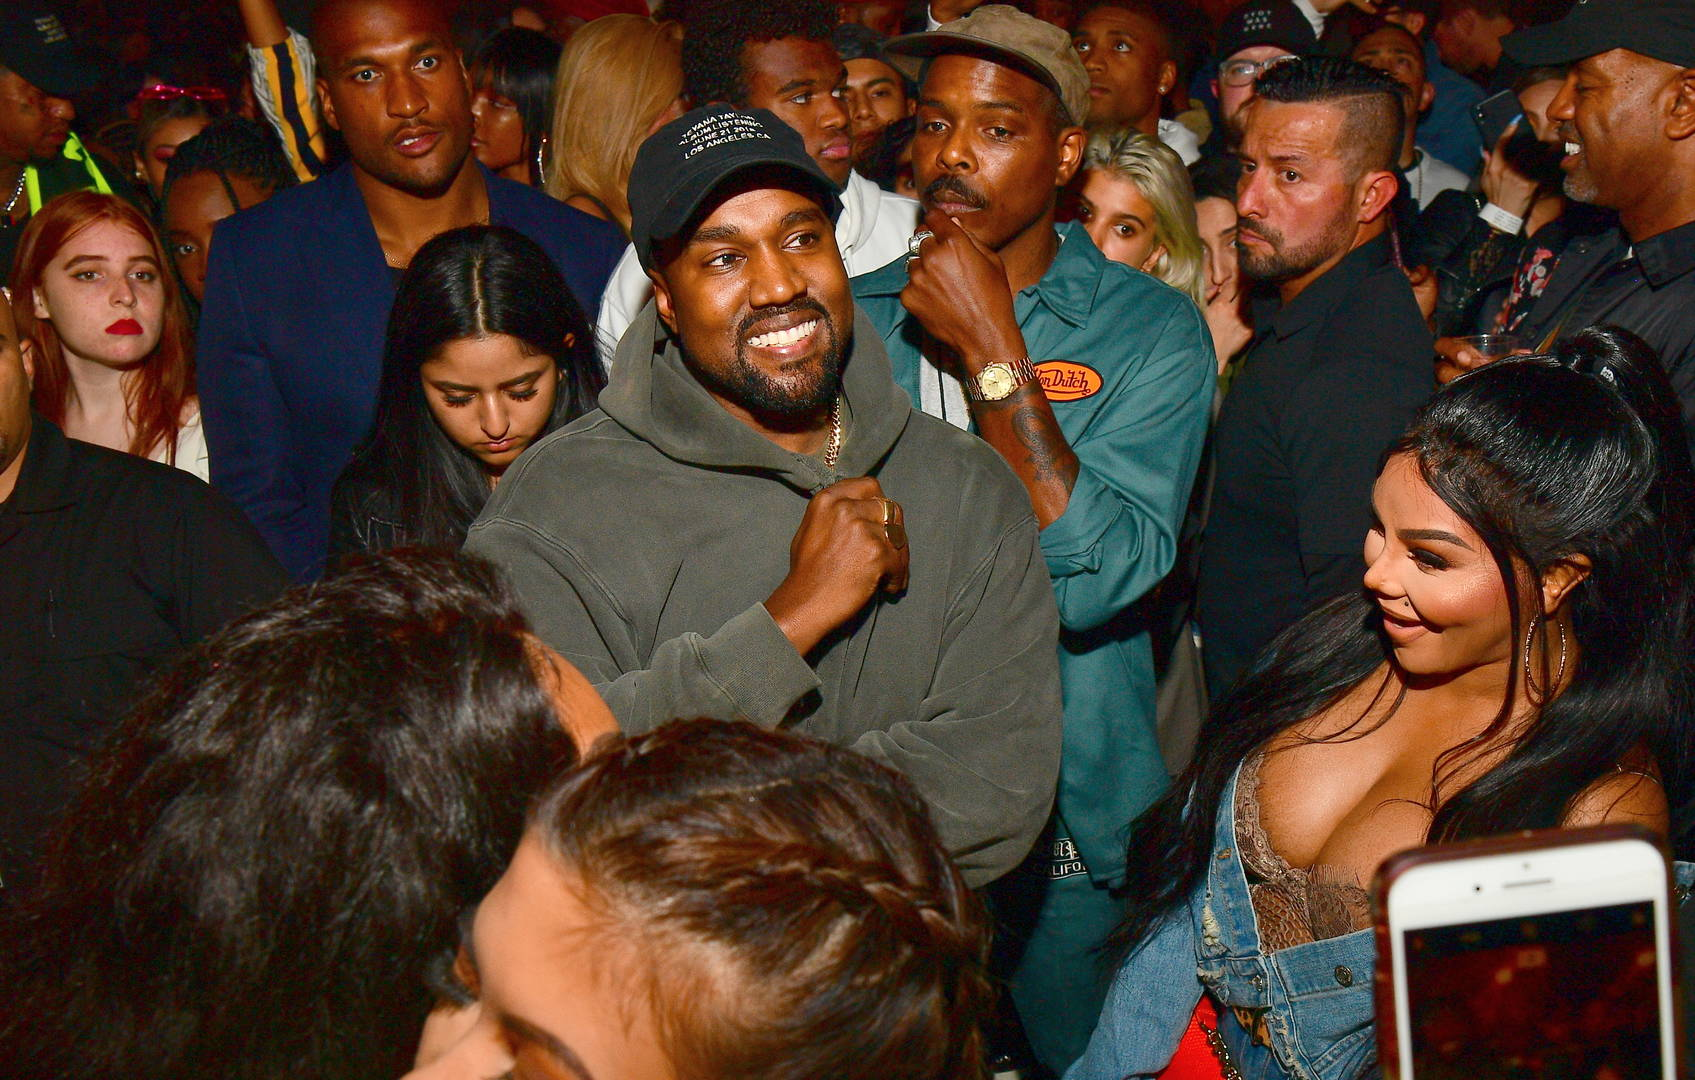 """How Kanye West's """"Wyoming Sessions"""" Rollout Was Doomed From The Start"""